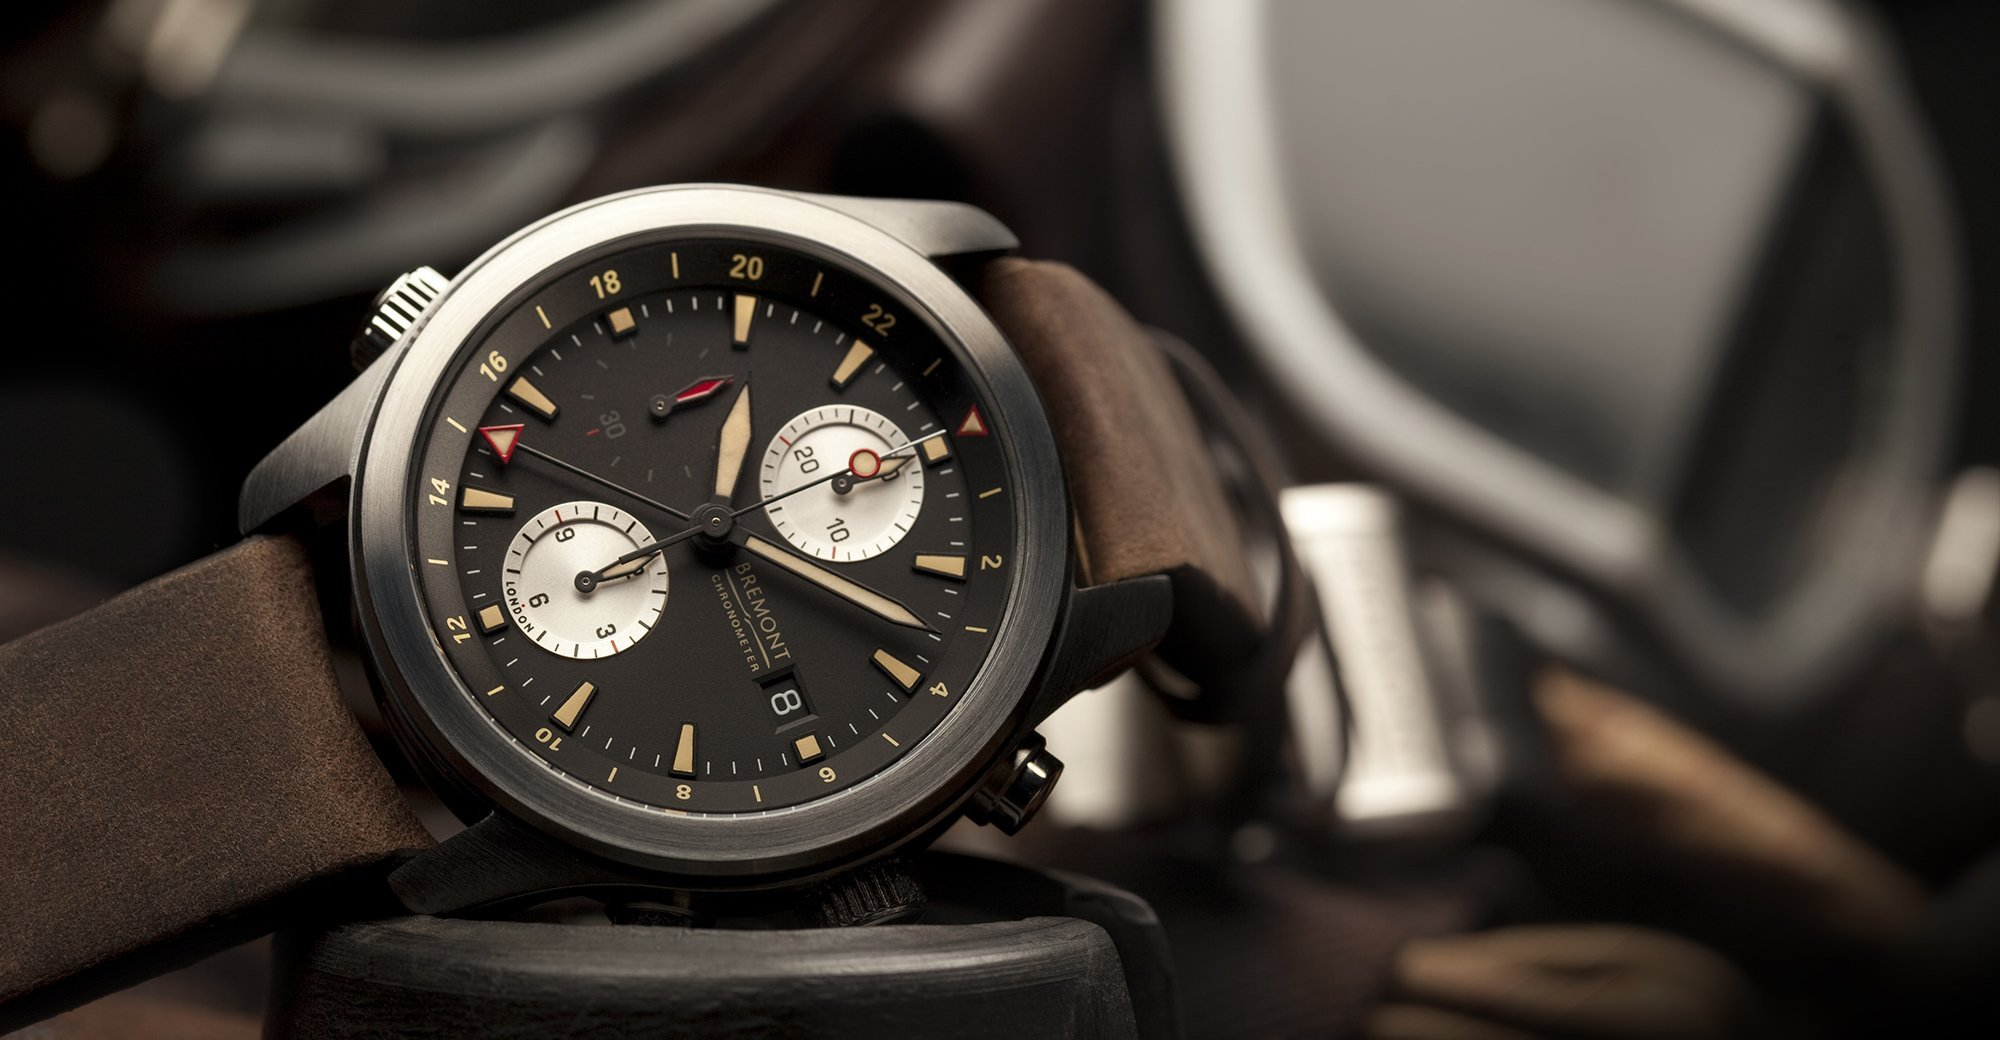 Bremont's first watches were Pilot watches